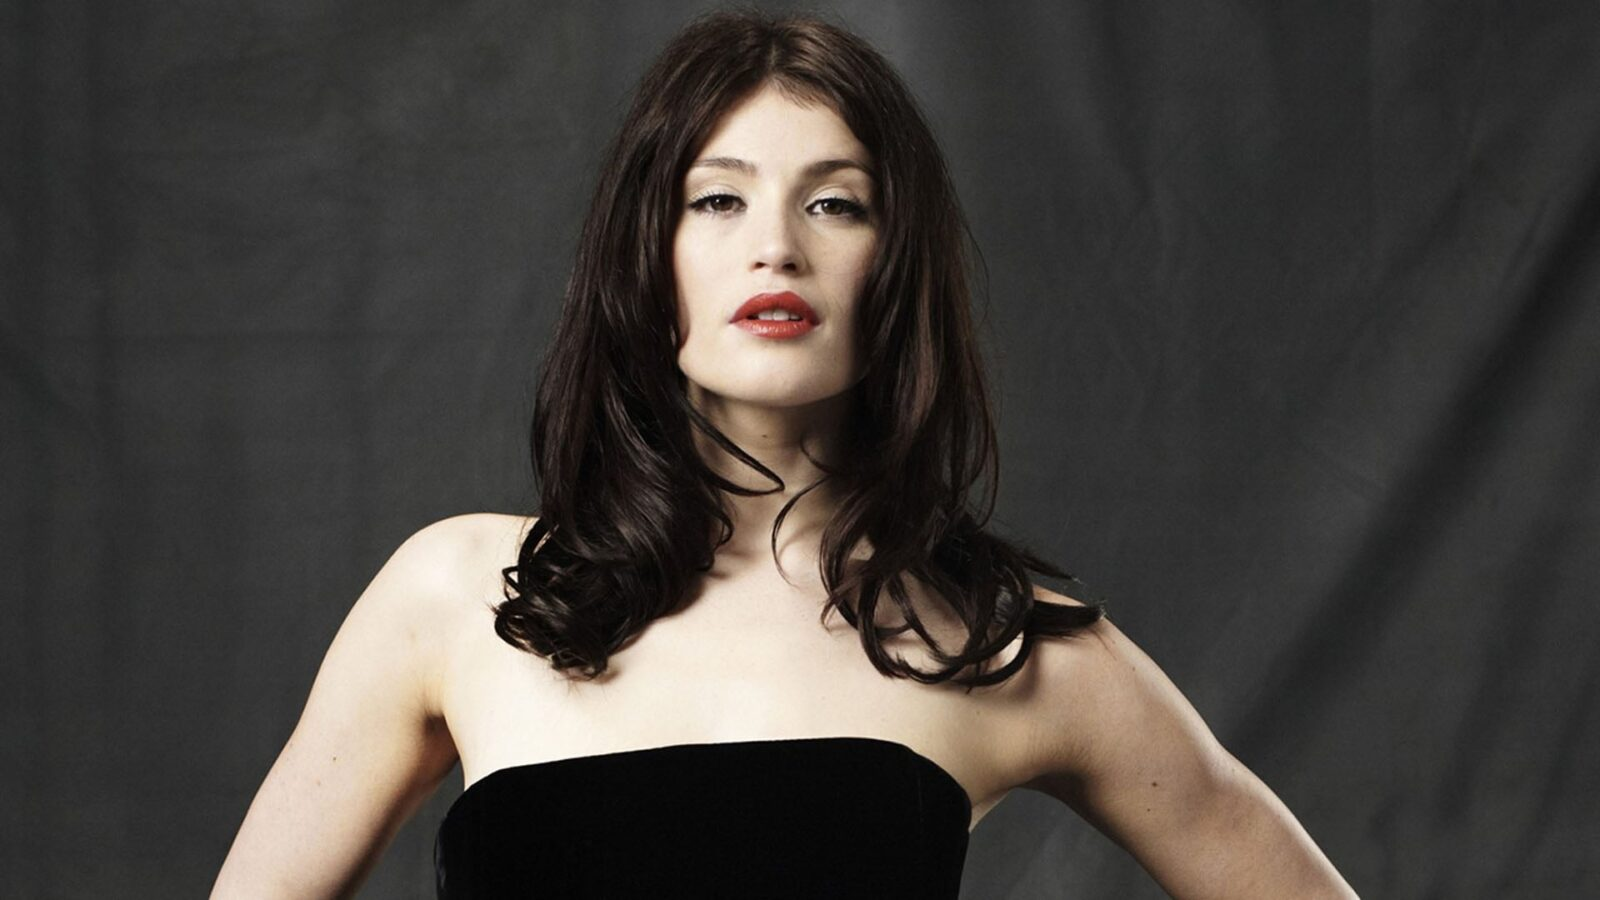 gemma arterton widescreen wallpaper - photo #32